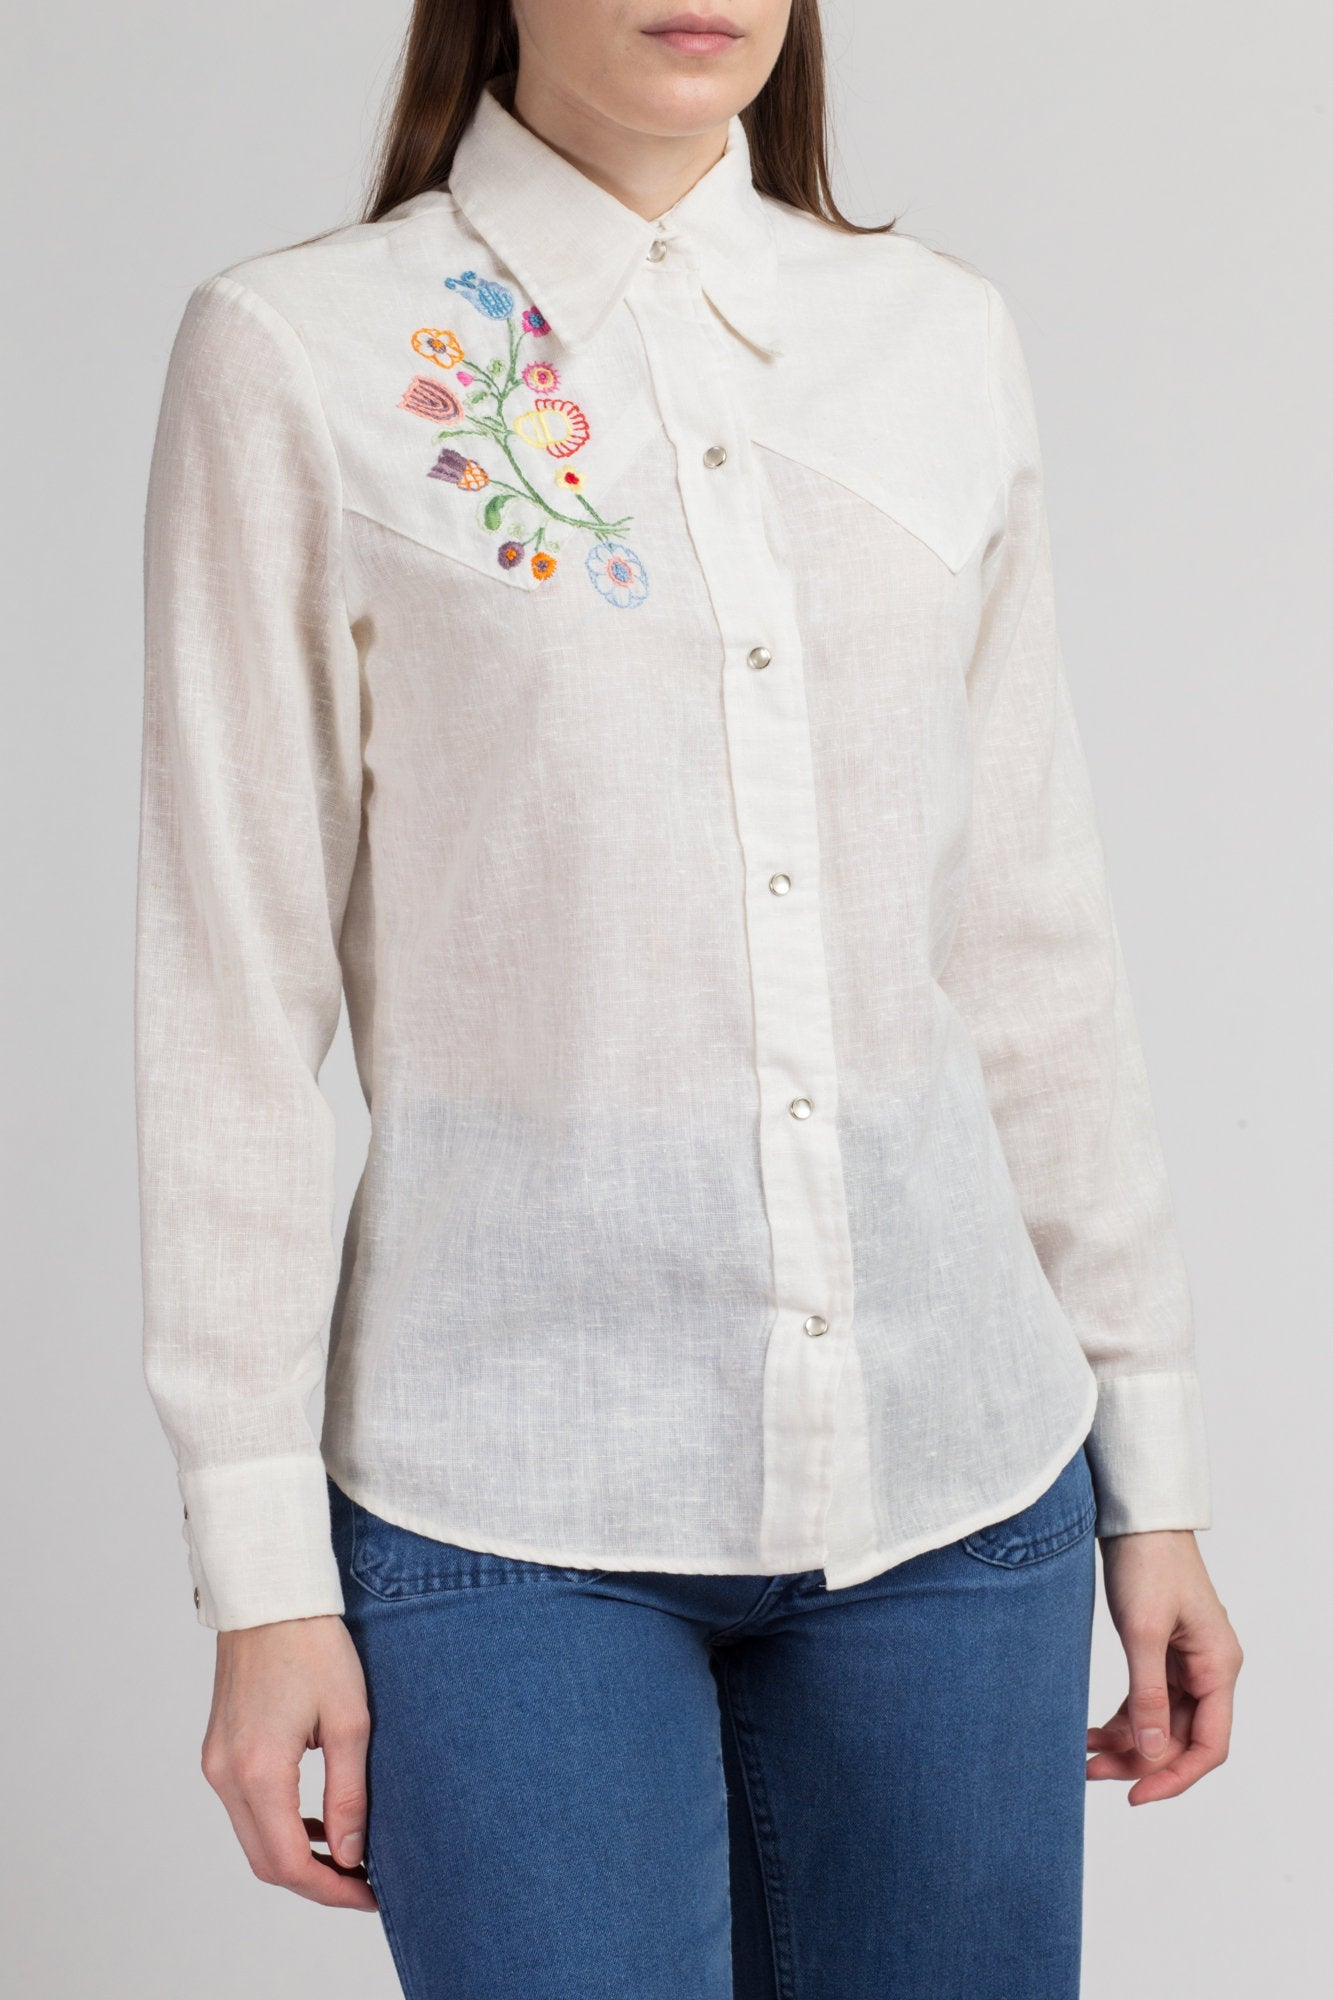 70s Levi's Floral Embroidered Shirt - Men's Small | Vintage Western White Pearl Snap Collared Top